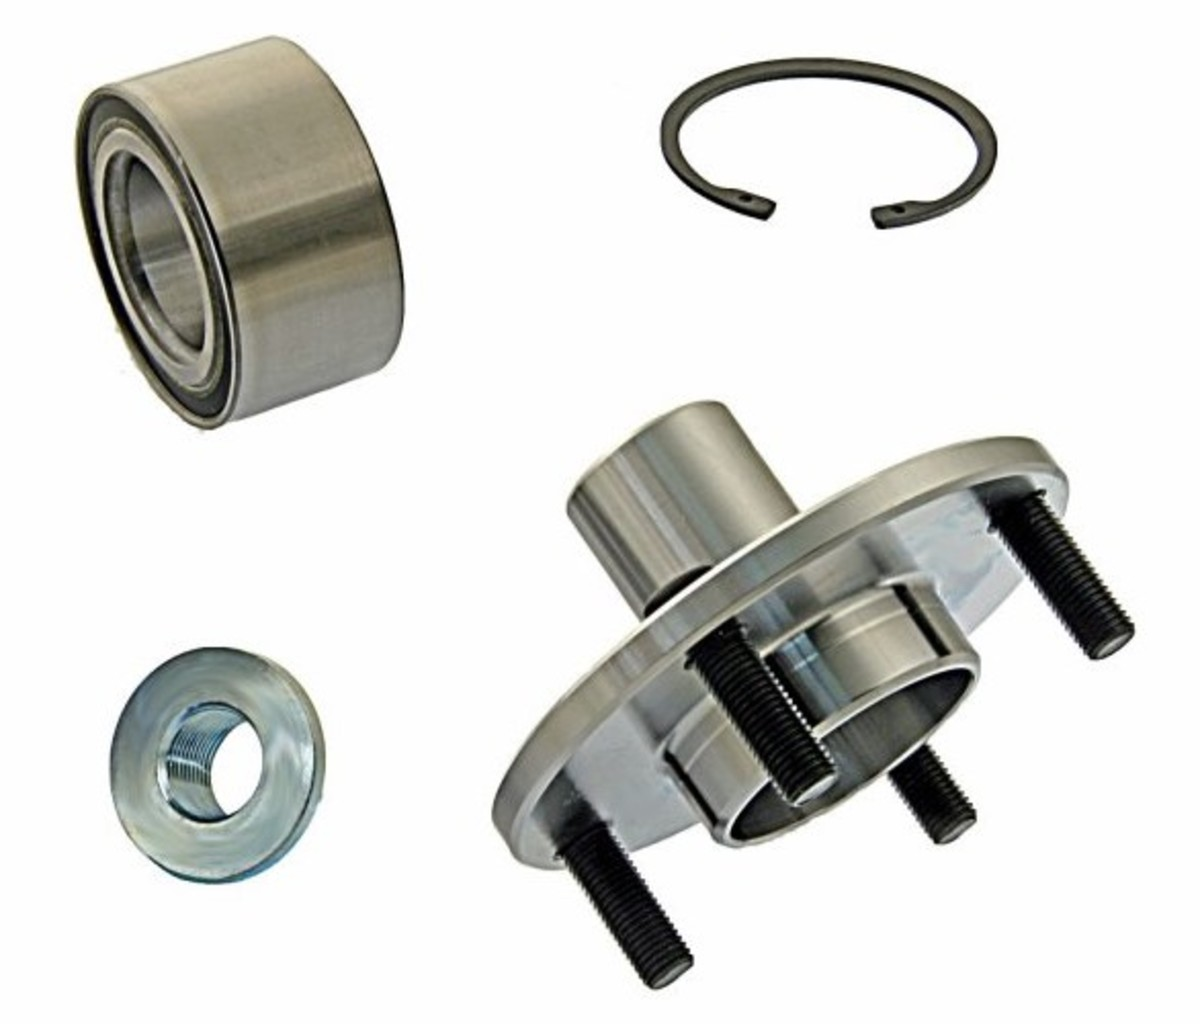 FWD Wheel Hub, Bearing, Snap Ring and CV Axle Nut Replacement Kit